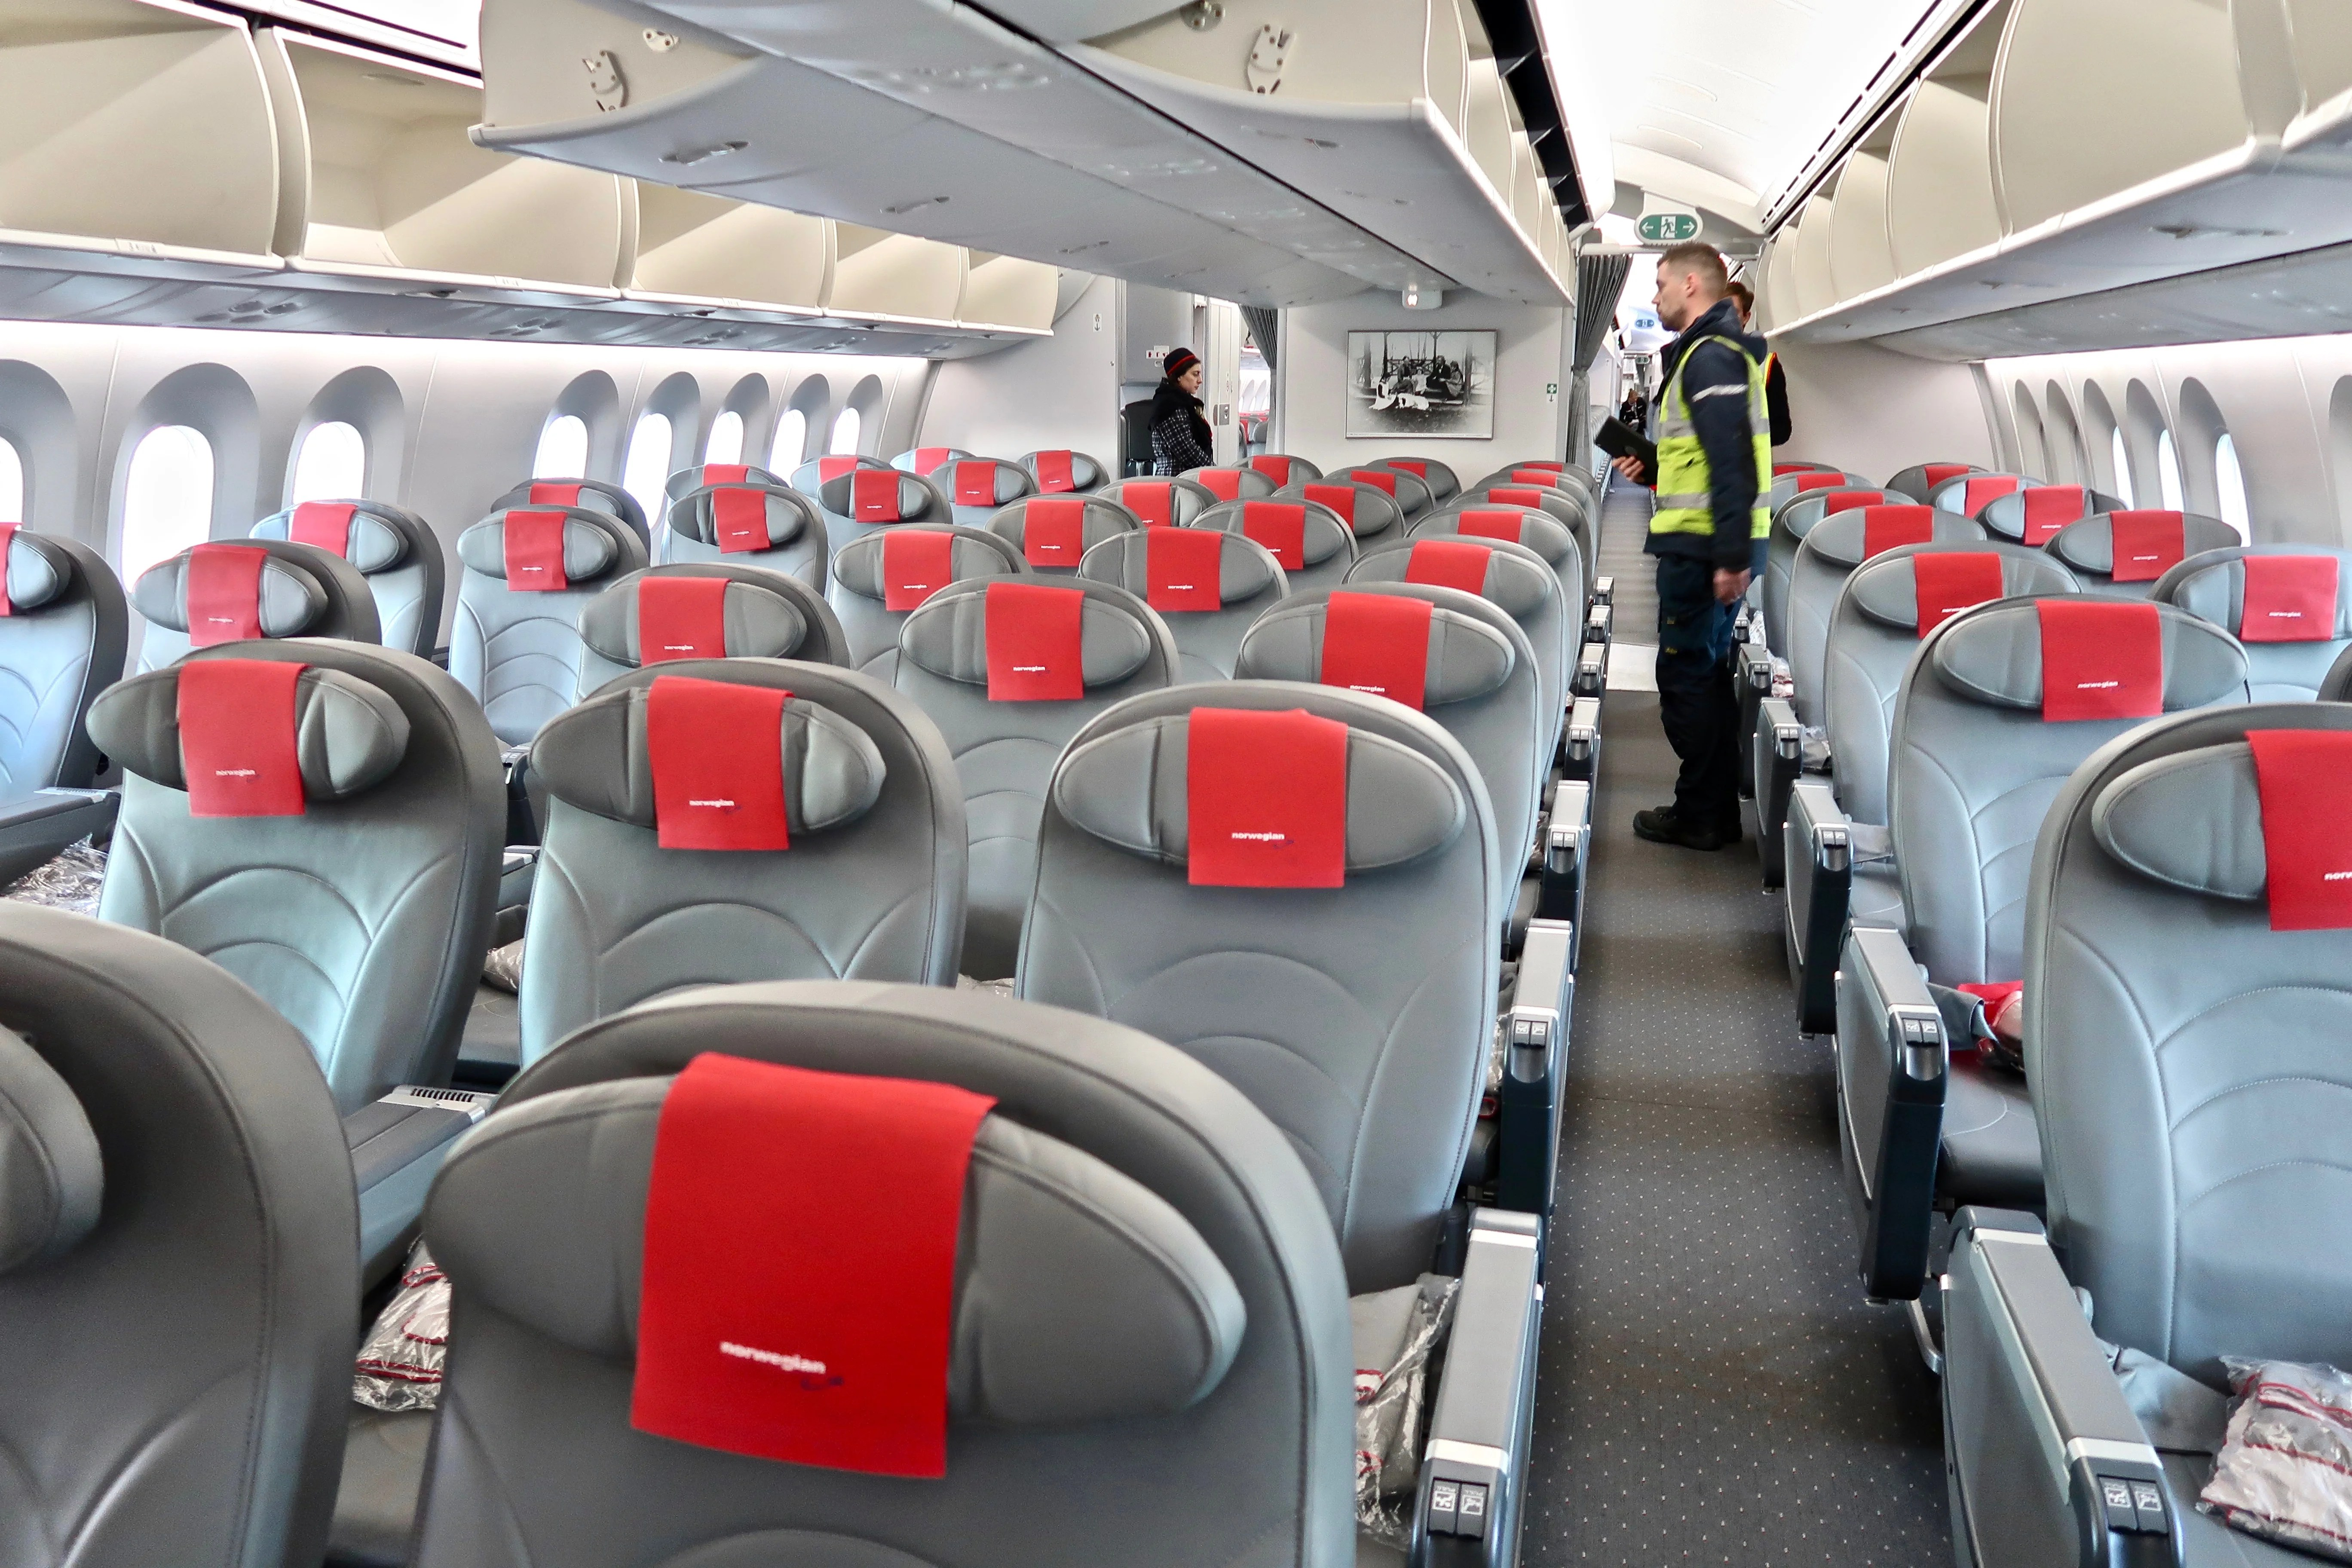 How to bid for a cheap upgrade on Norwegian